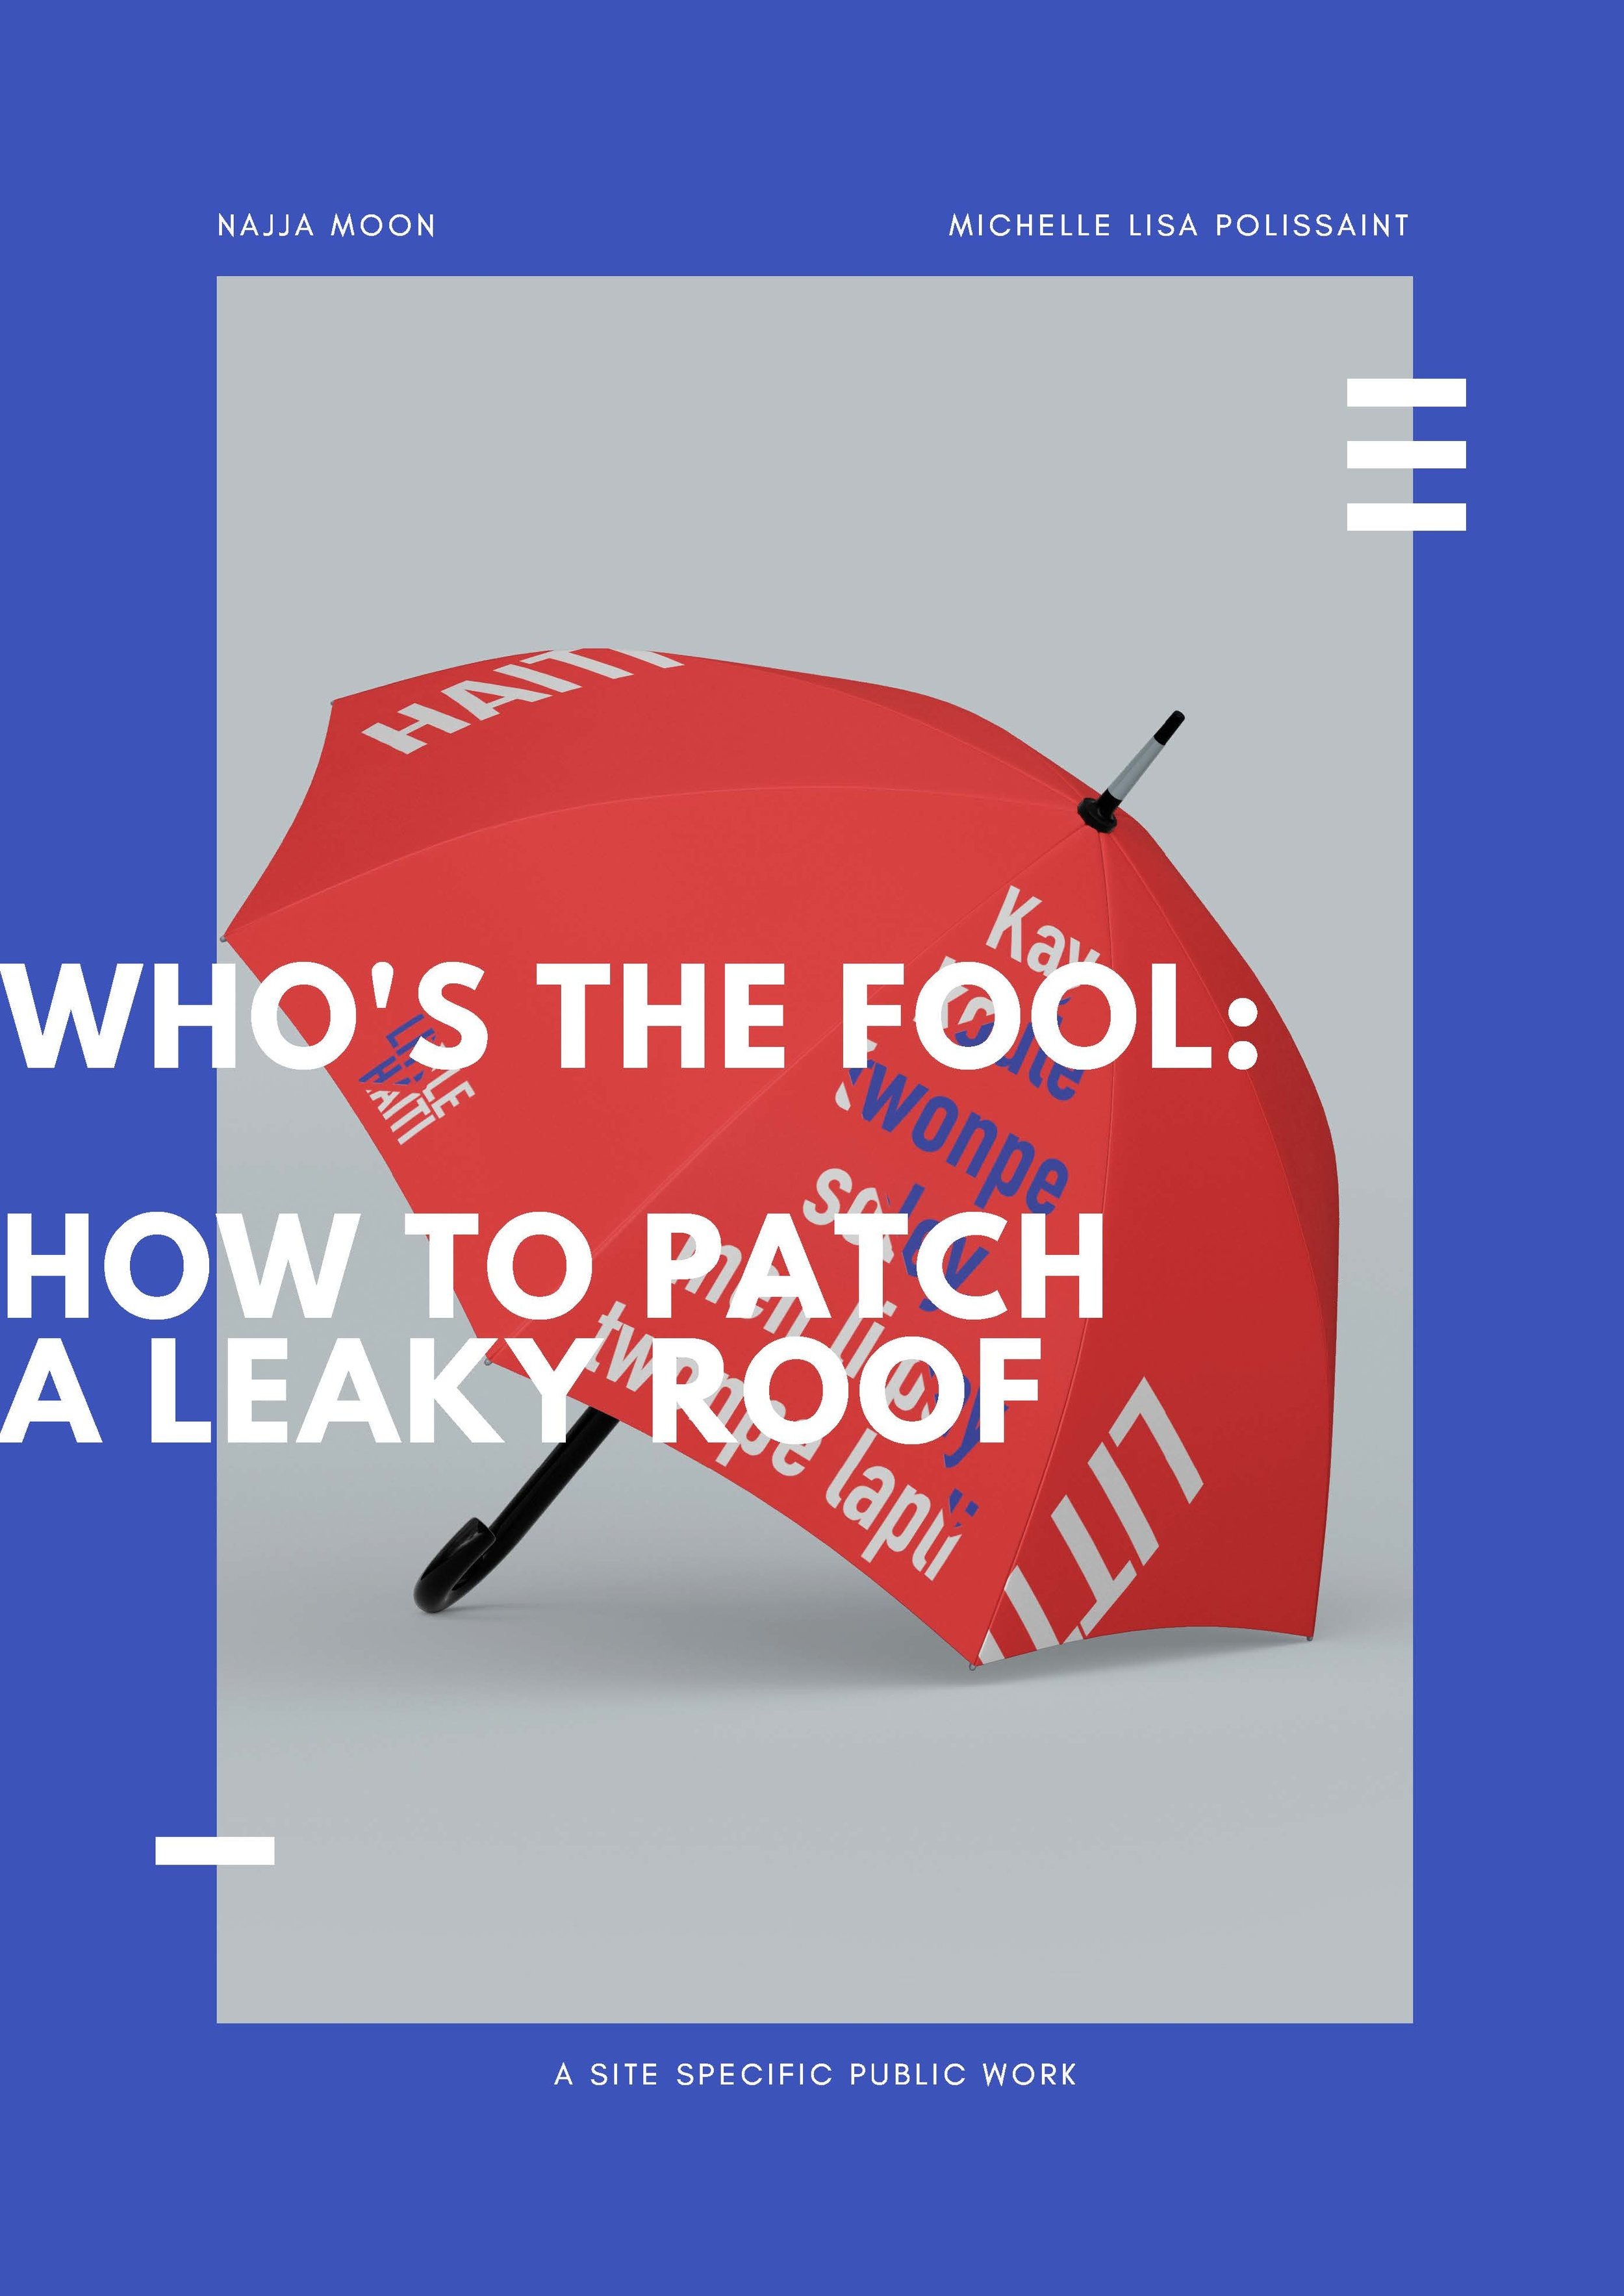 How To Patch a Leaky Roof - Najja Moon & Michelle Lisa Polissaint_Page_1.jpg